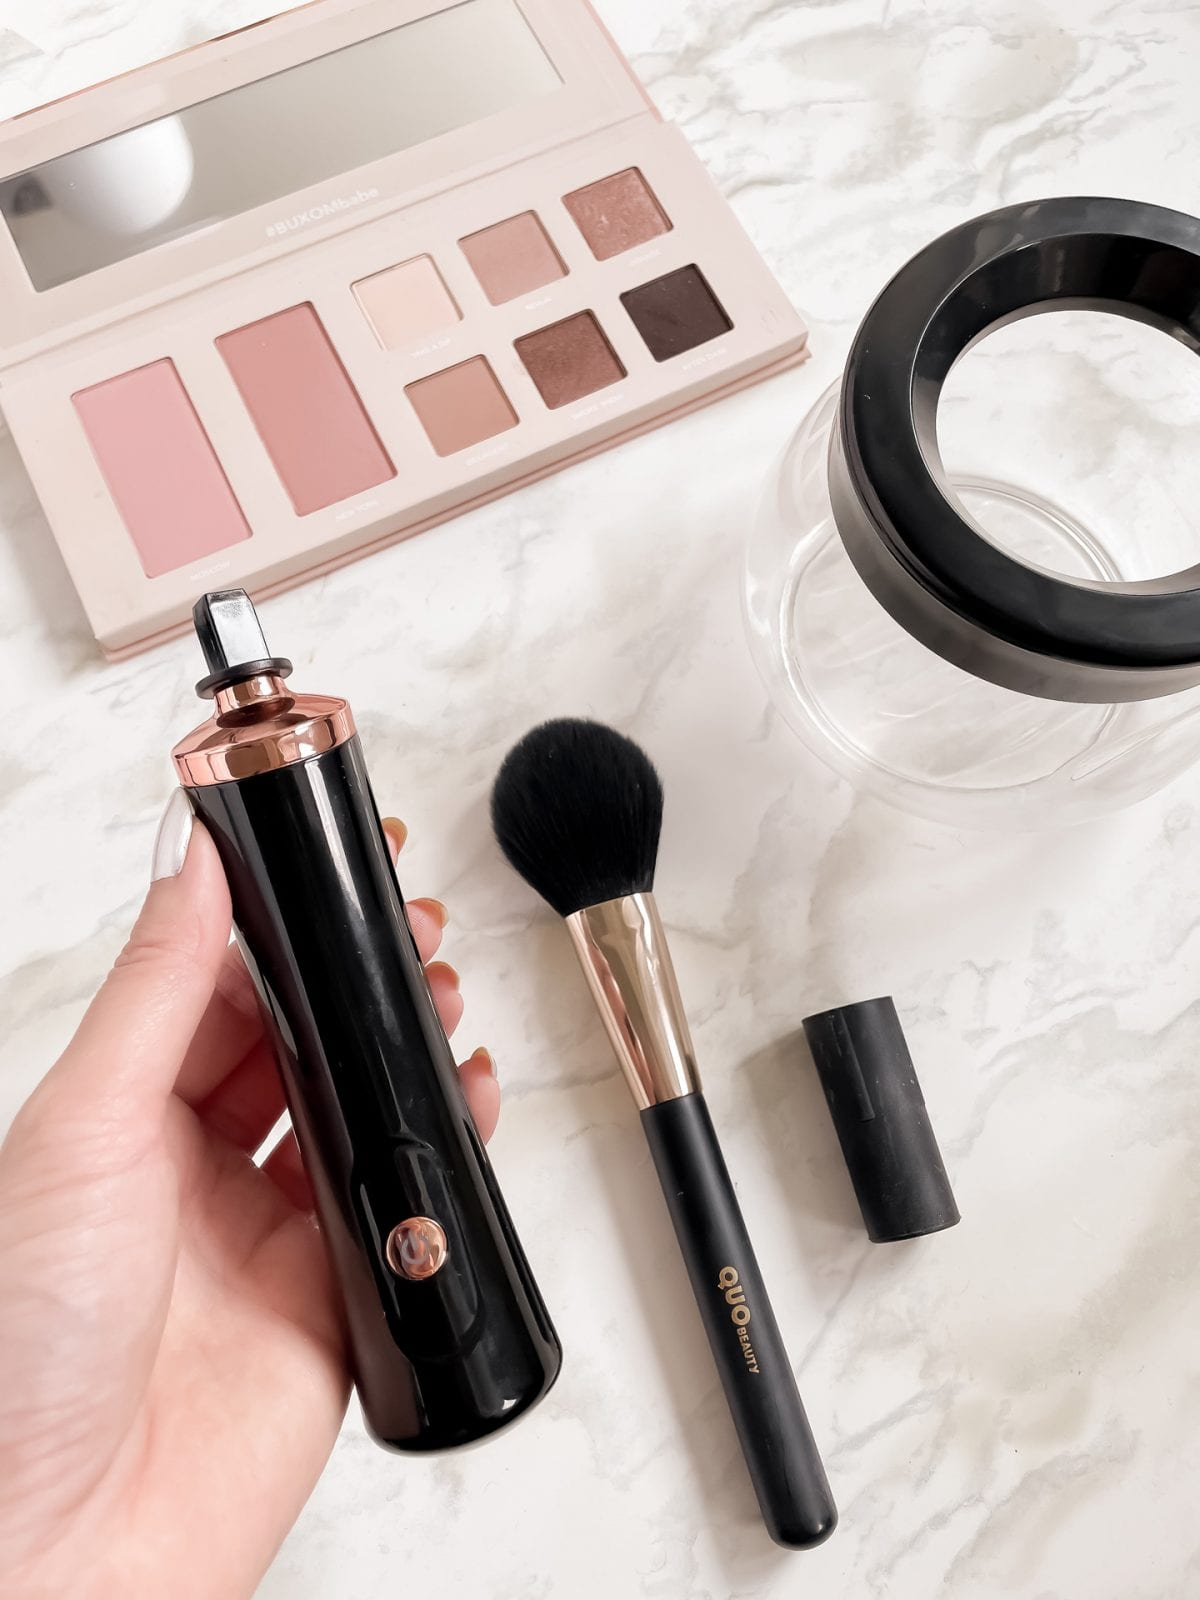 This Amazon electric makeup brush cleaner kit will make the task of cleaning your makeup brushes so easy and strangely satisfying. Read the full review on yesmissy.com